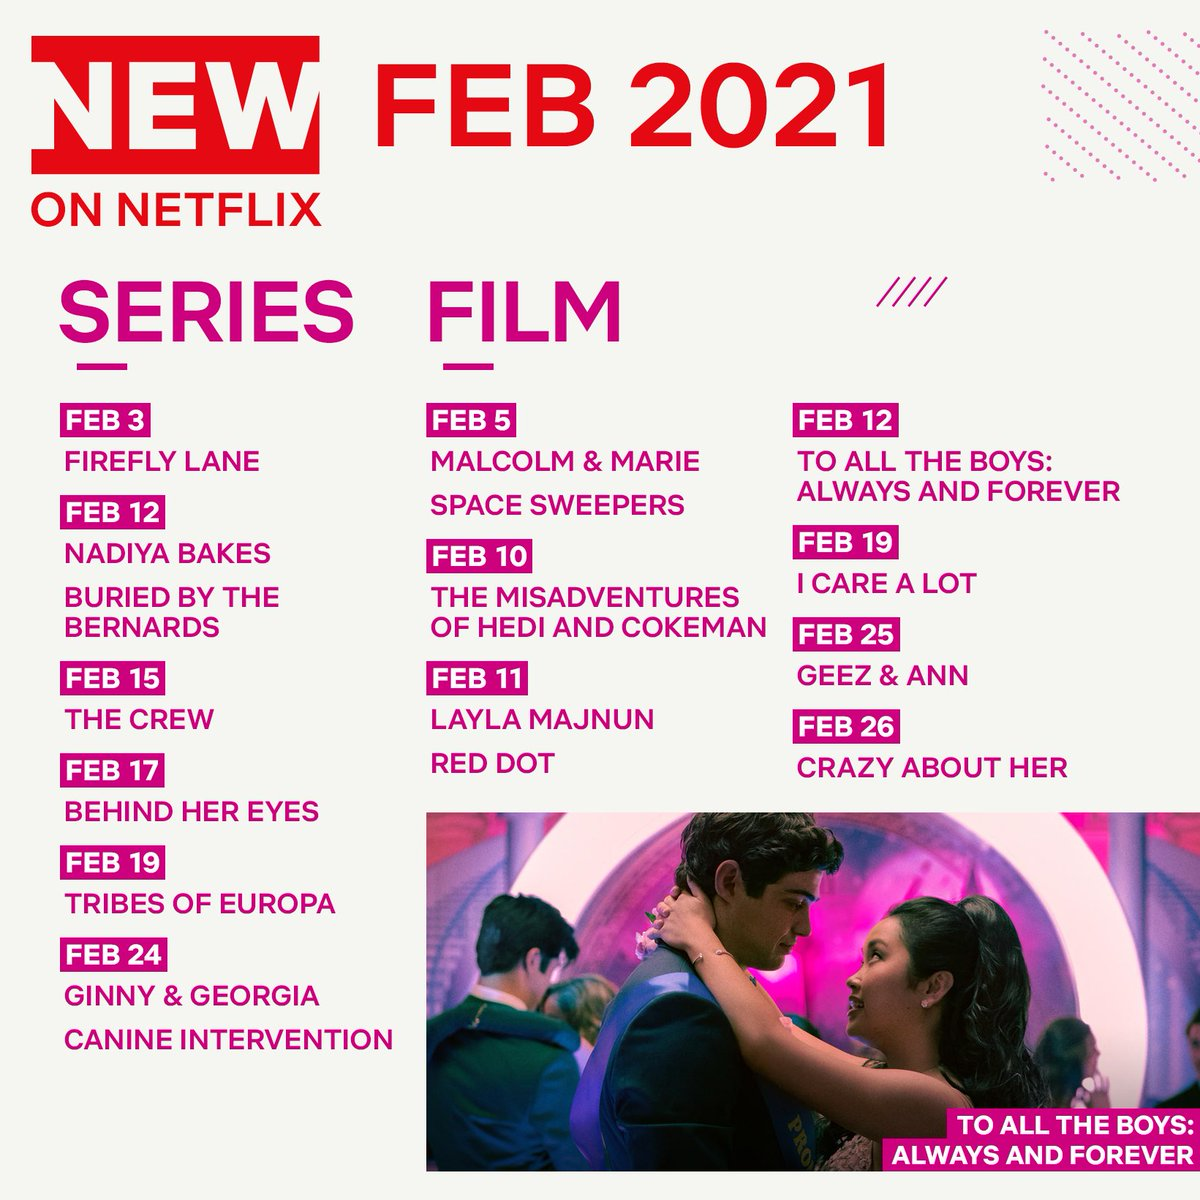 Replying to @netflixqueue: A sneak peek at a few of the new films and shows coming to Netflix US in February